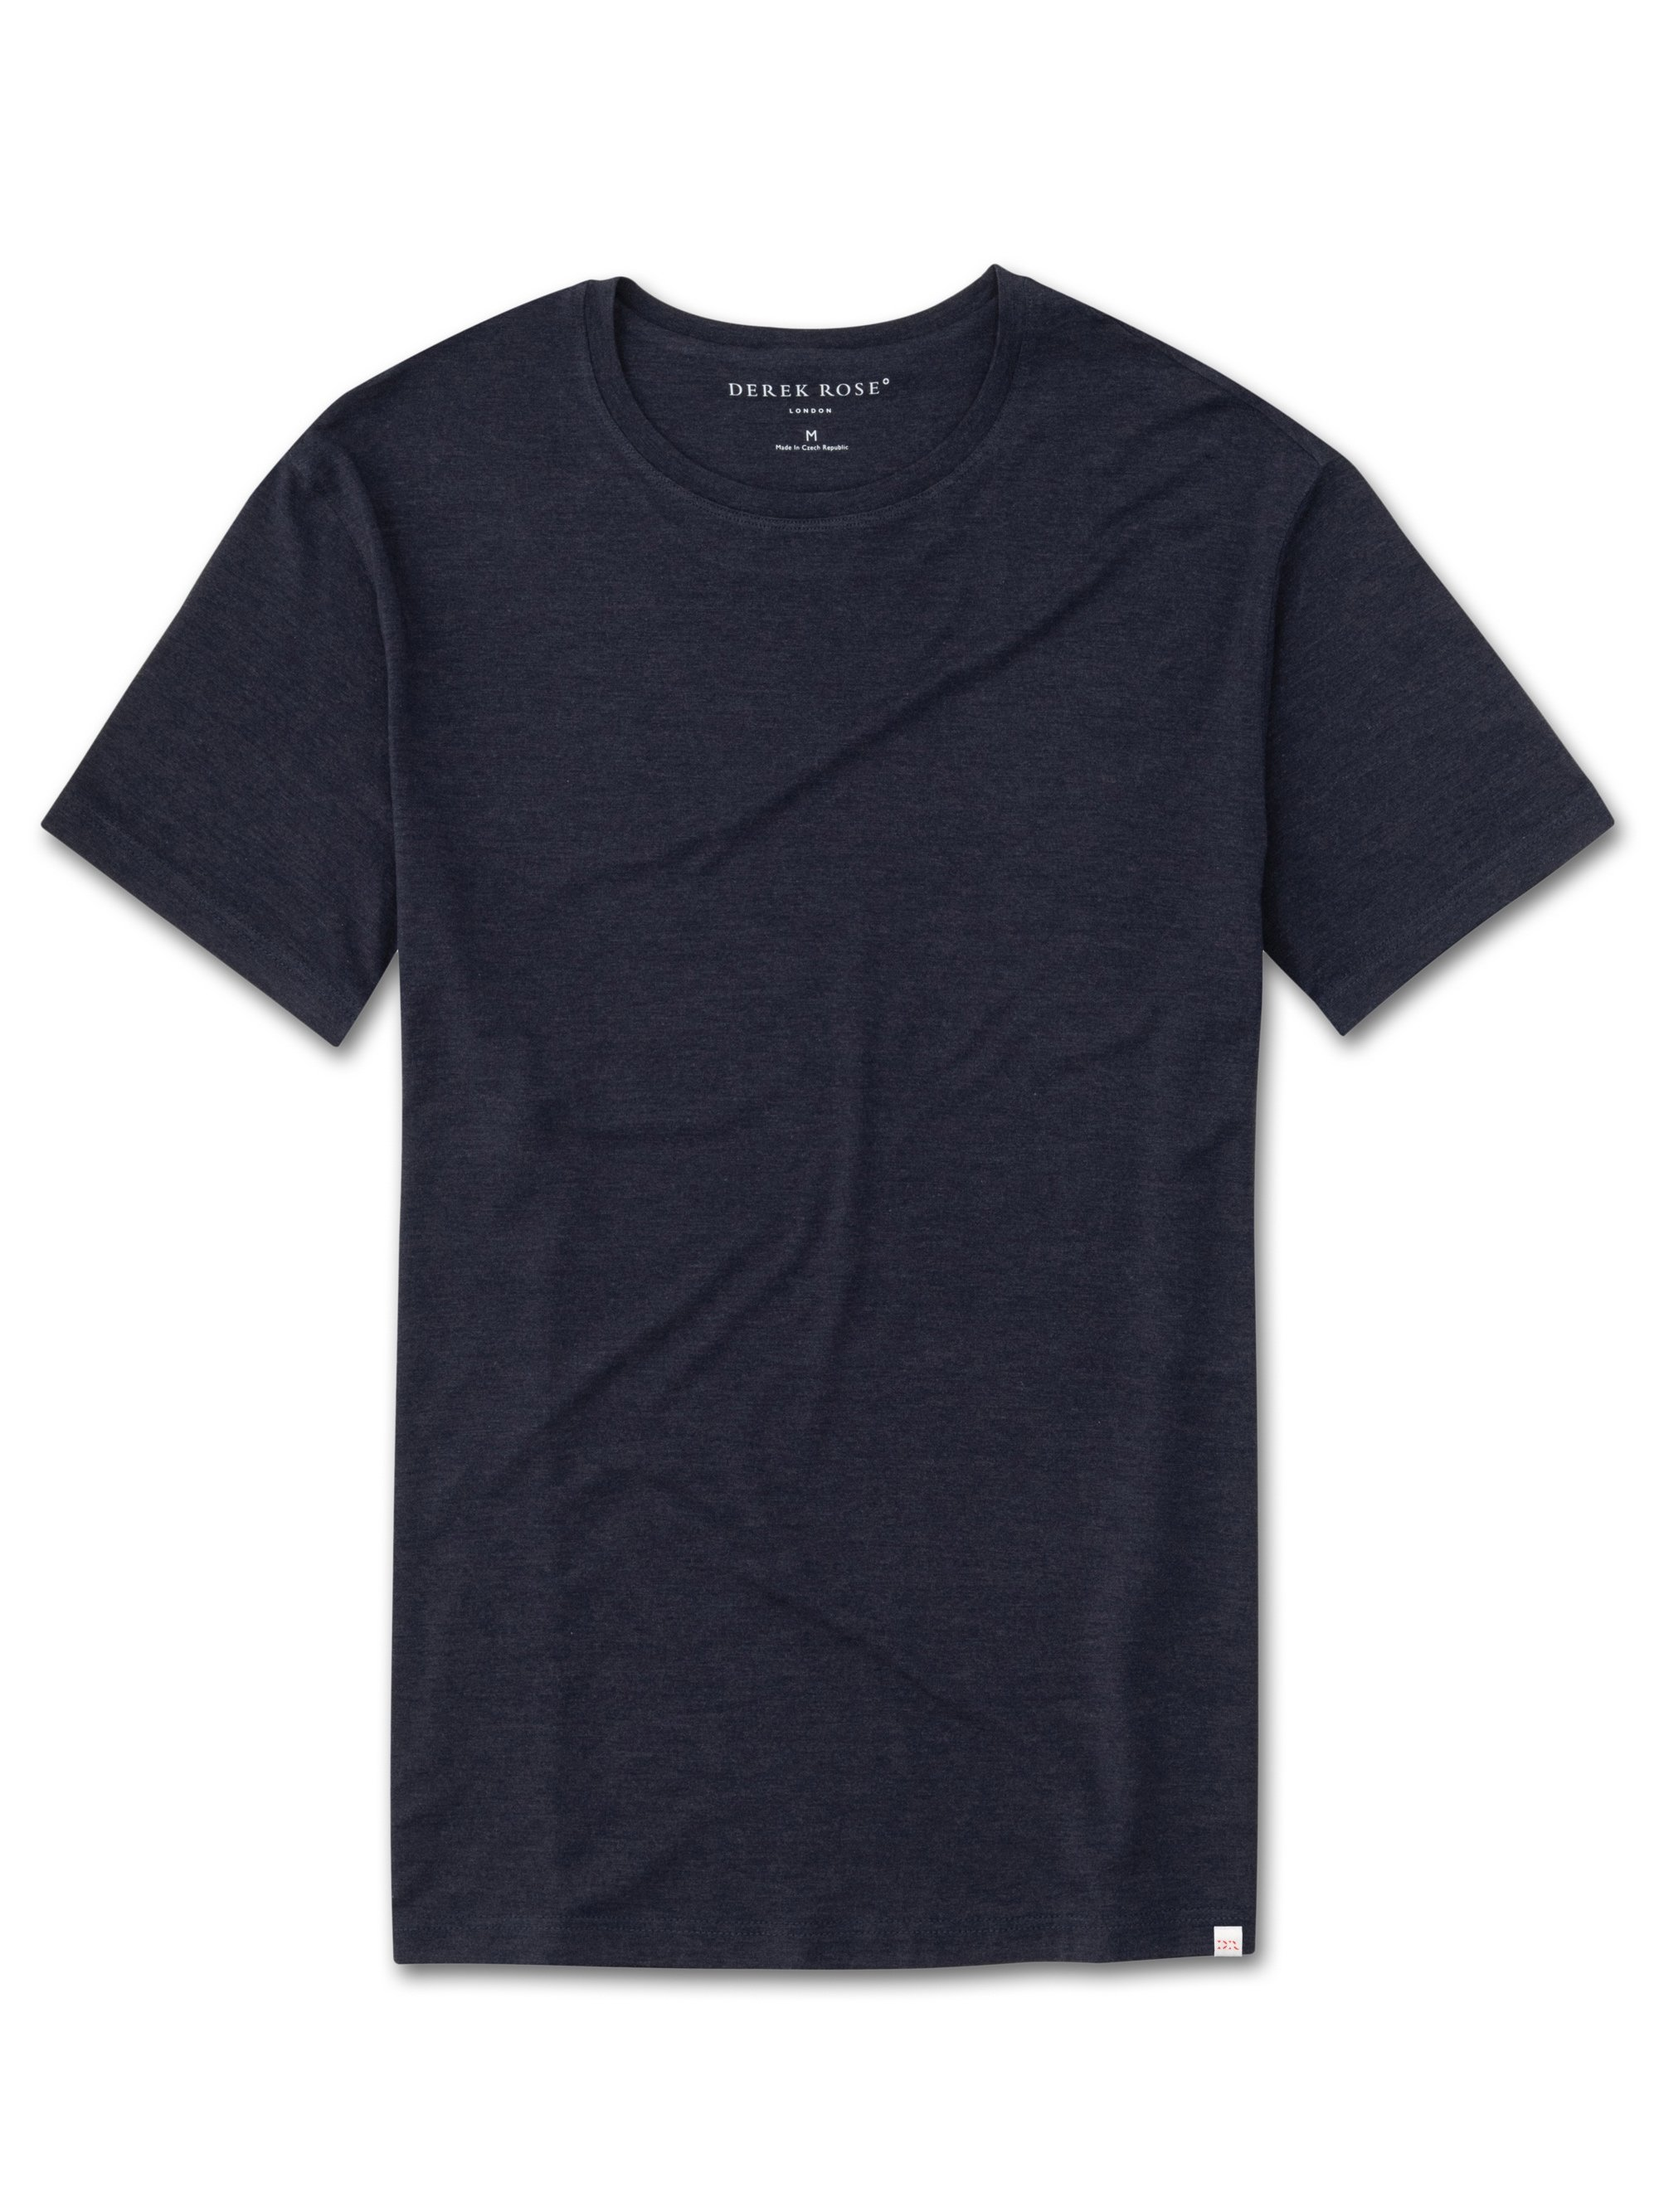 Men's Short Sleeve T-Shirt Marlowe Micro Modal Stretch Navy